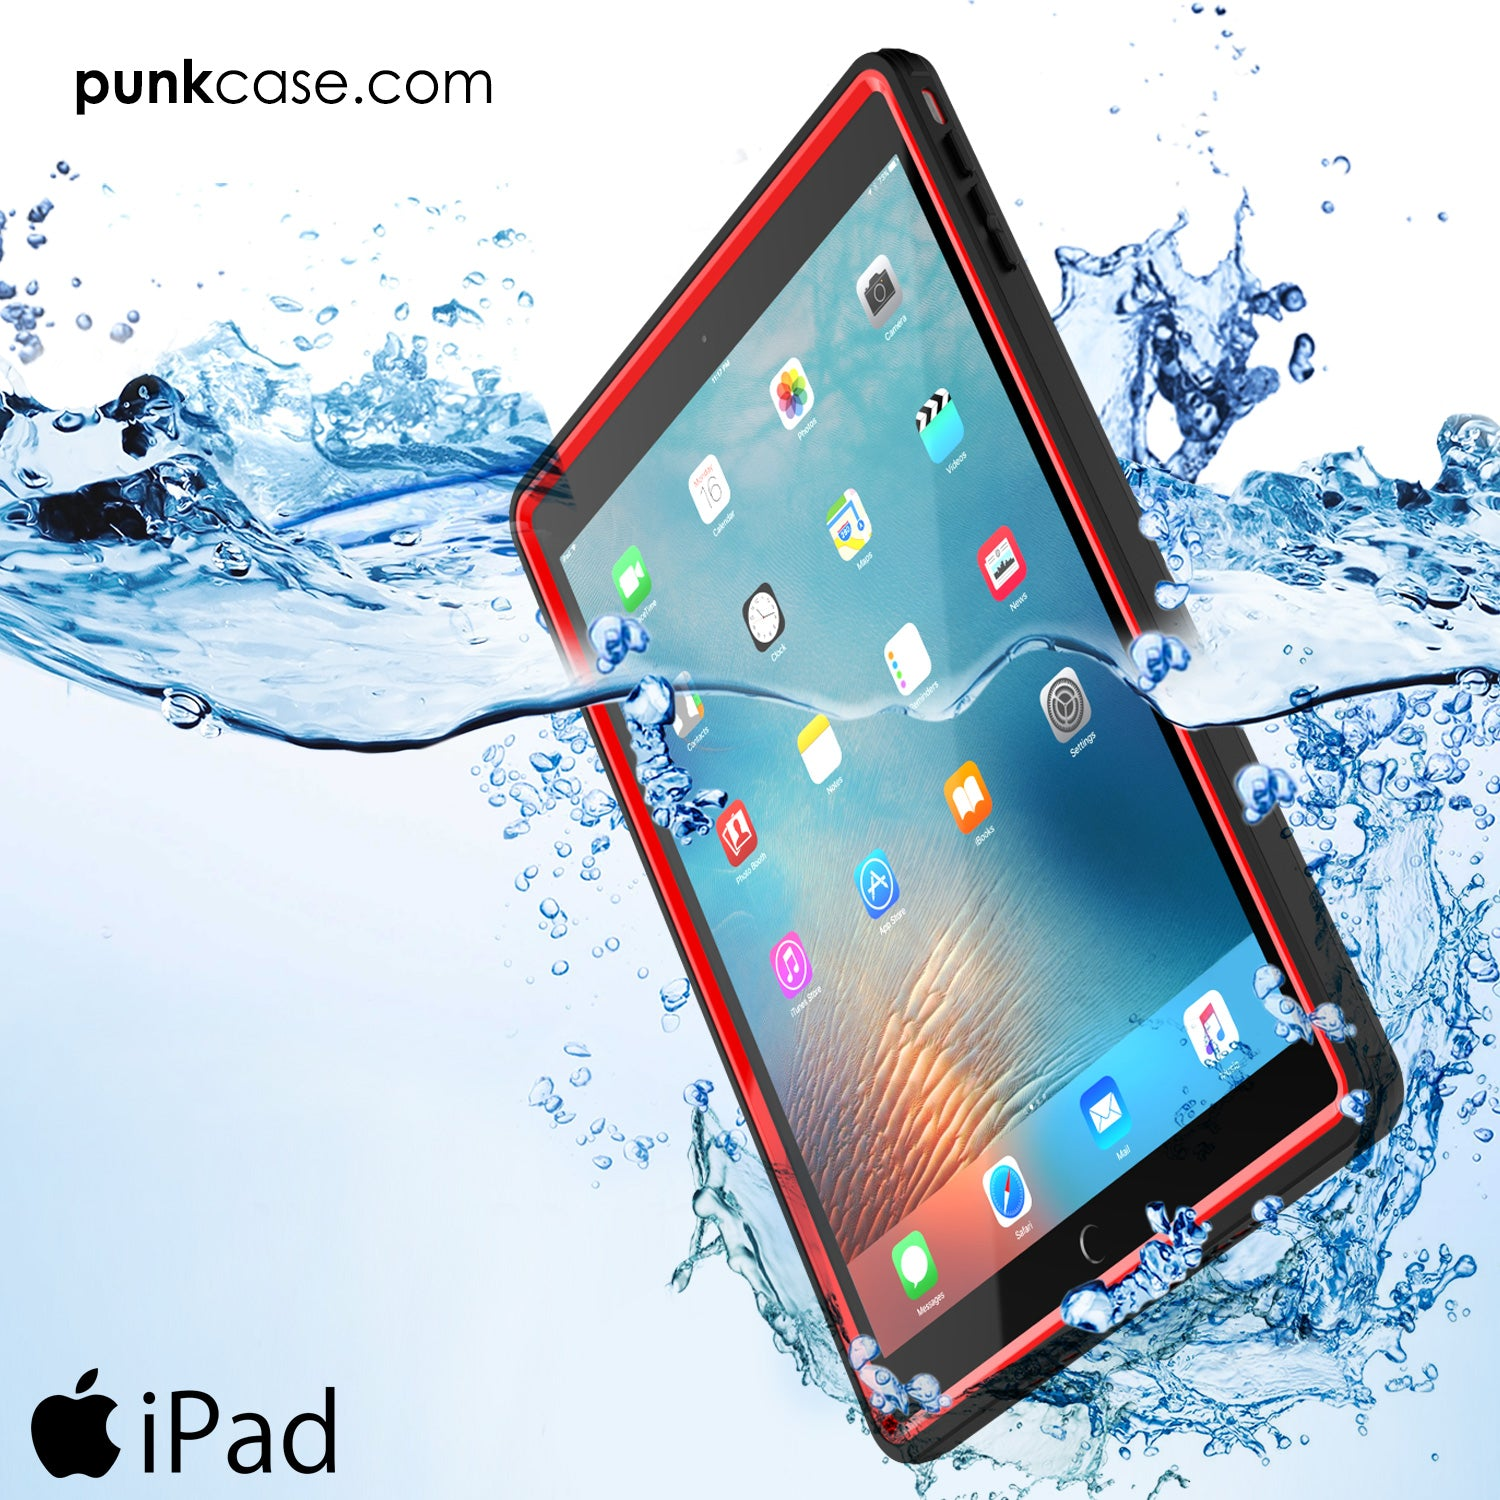 Punkcase iPad Pro 9.7 Case [CRYSTAL Series], Waterproof, Ultra-Thin Cover [Shockproof] [Dustproof] with Built-in Screen Protector [Red]